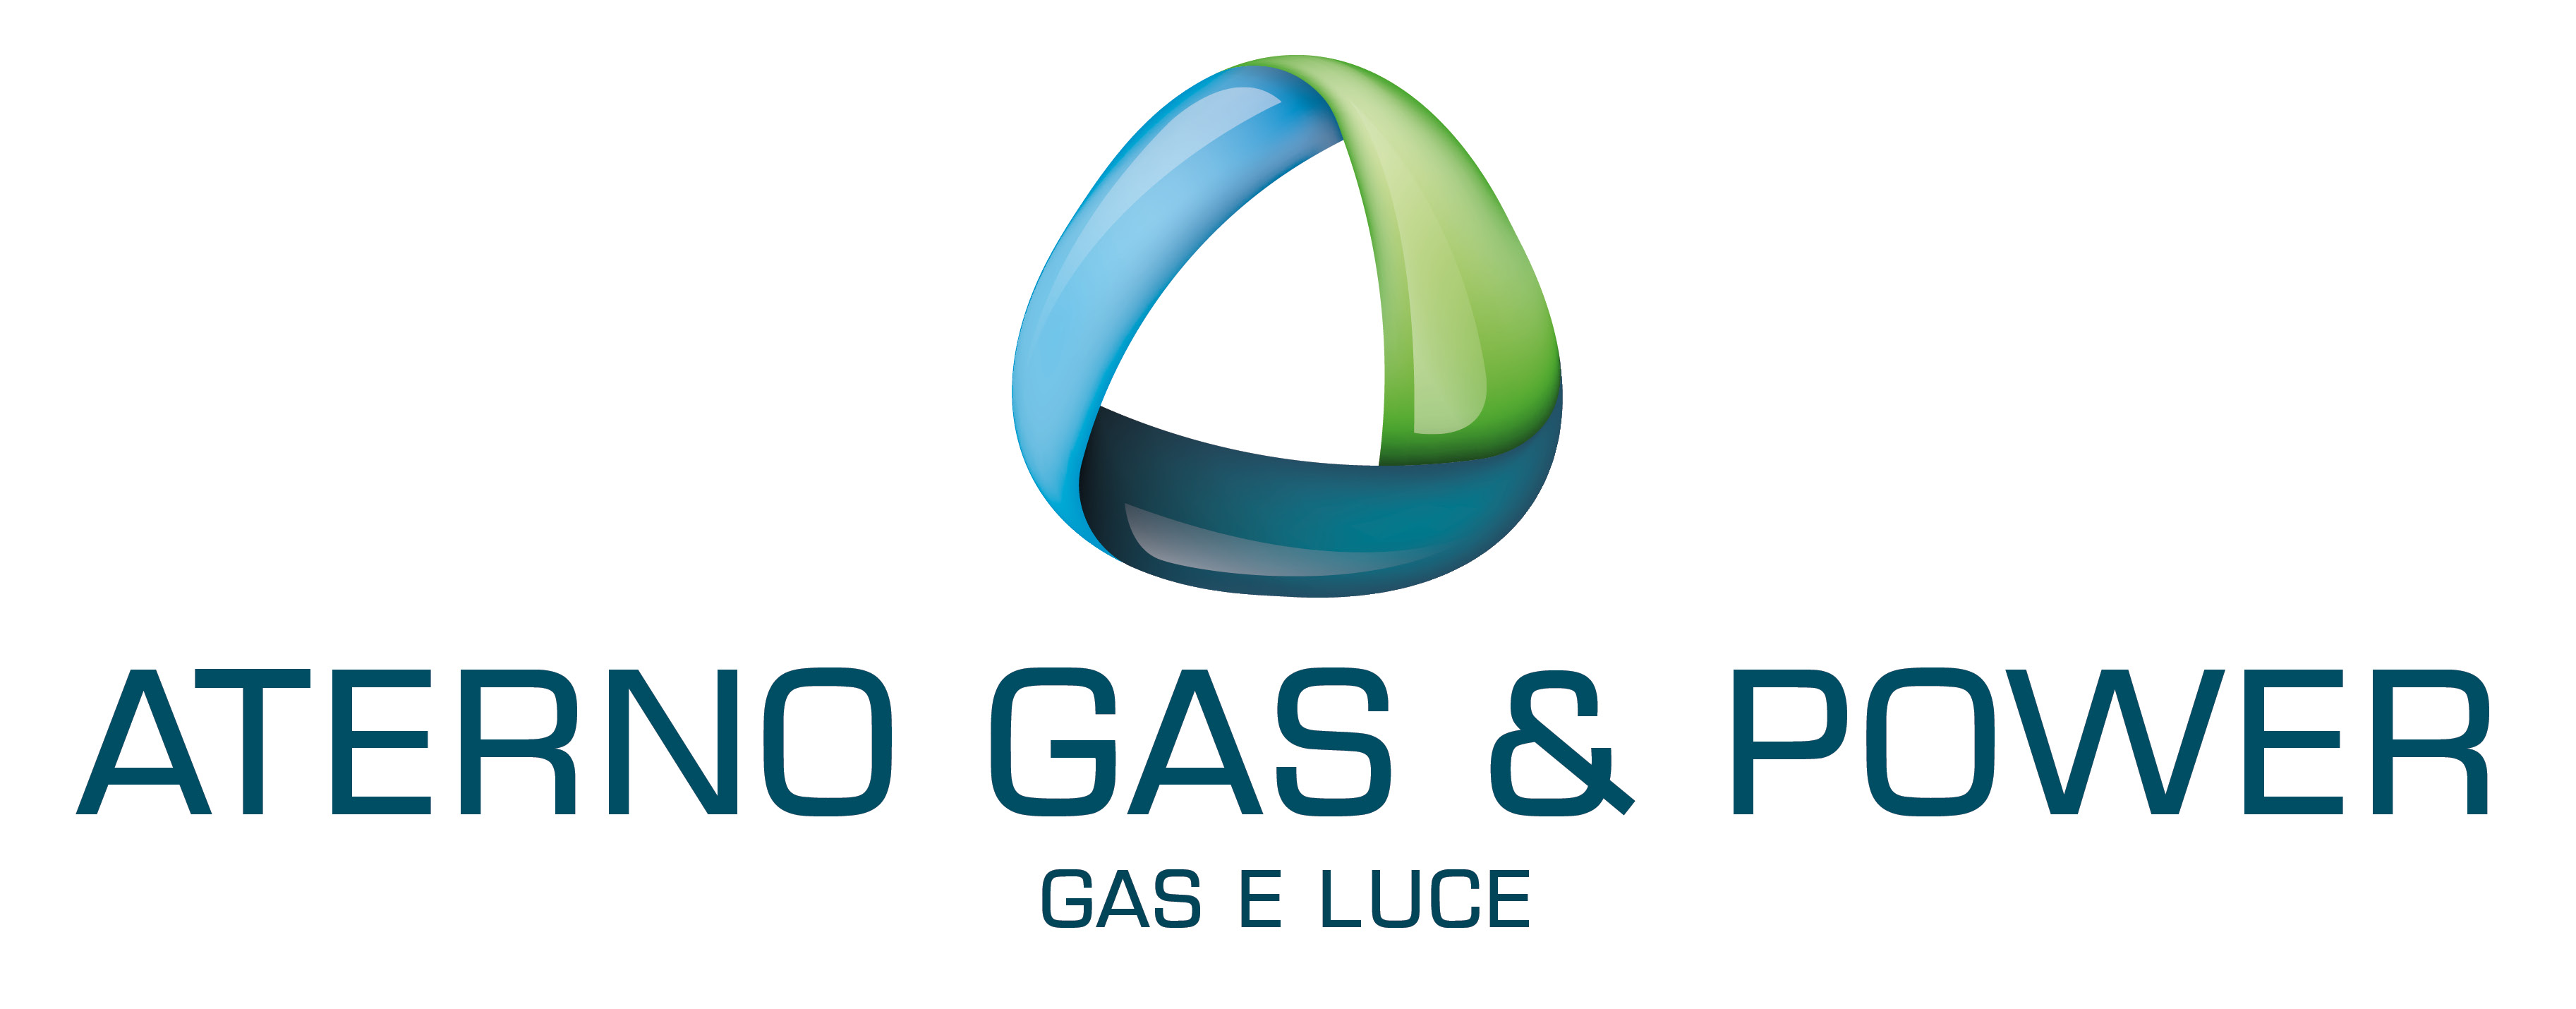 Aterno Gas & Power